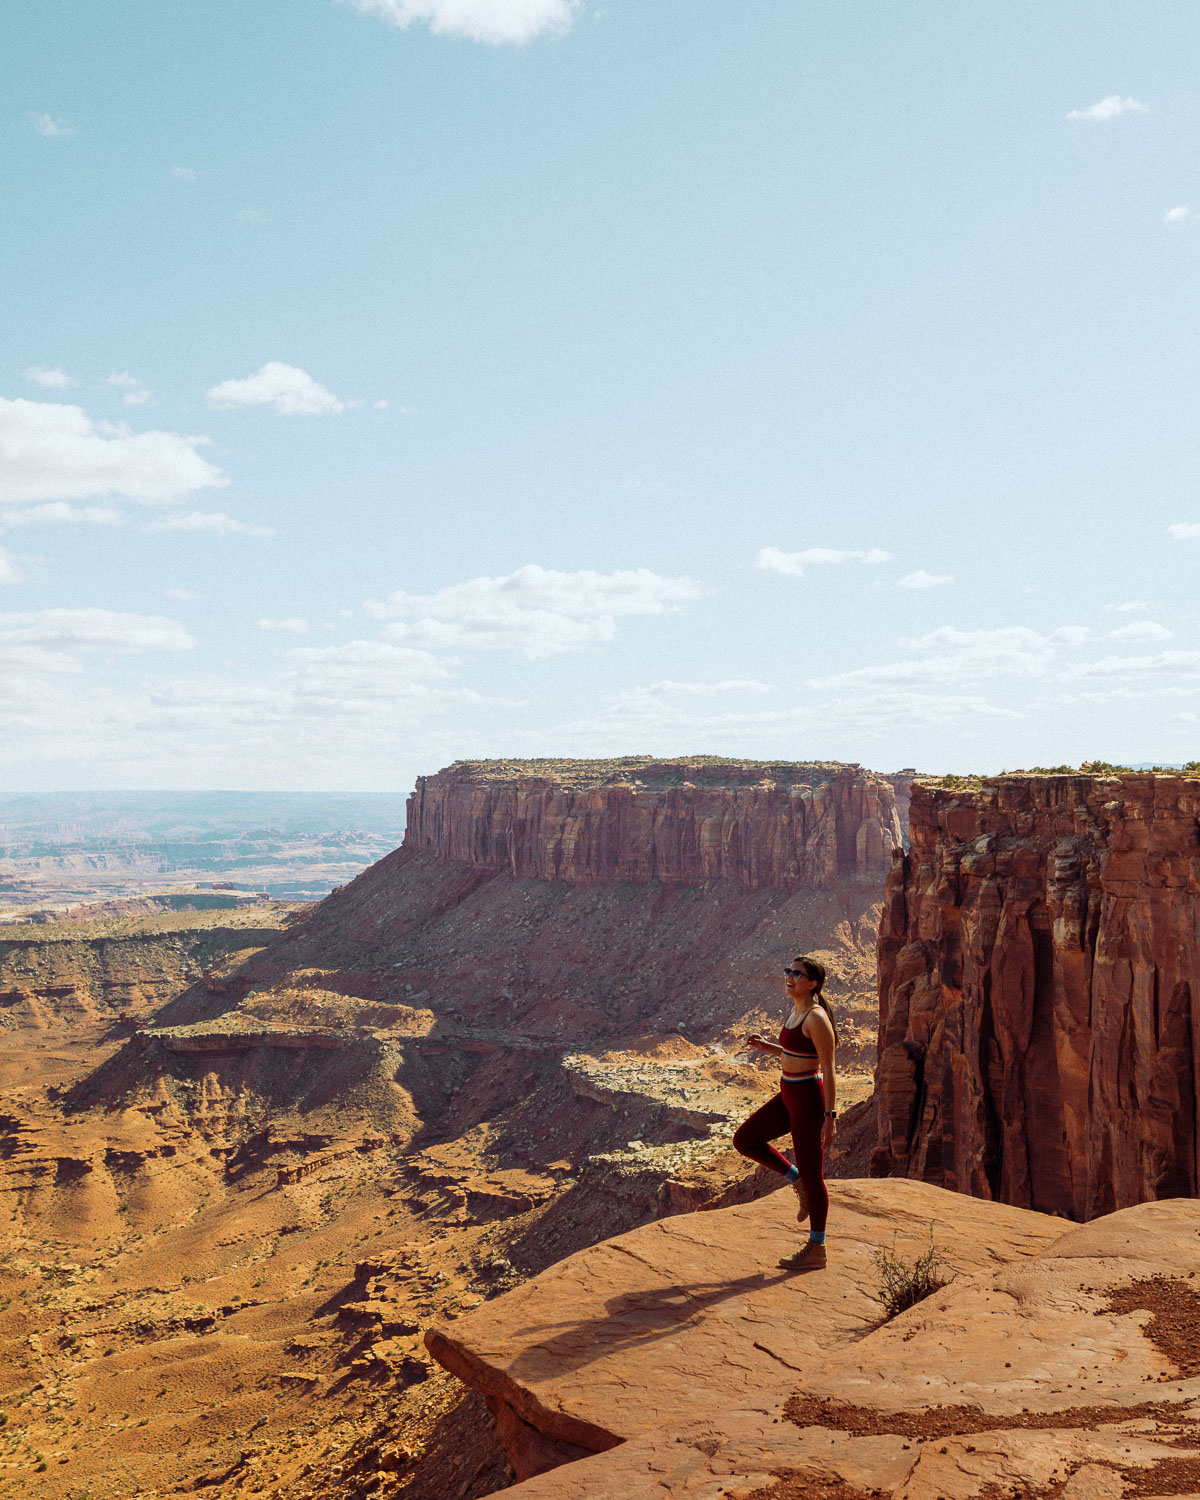 Rachel Off Duty: A Woman in Red Hiking Clothes Posing with One Knee Bent at Canyonlands National Park